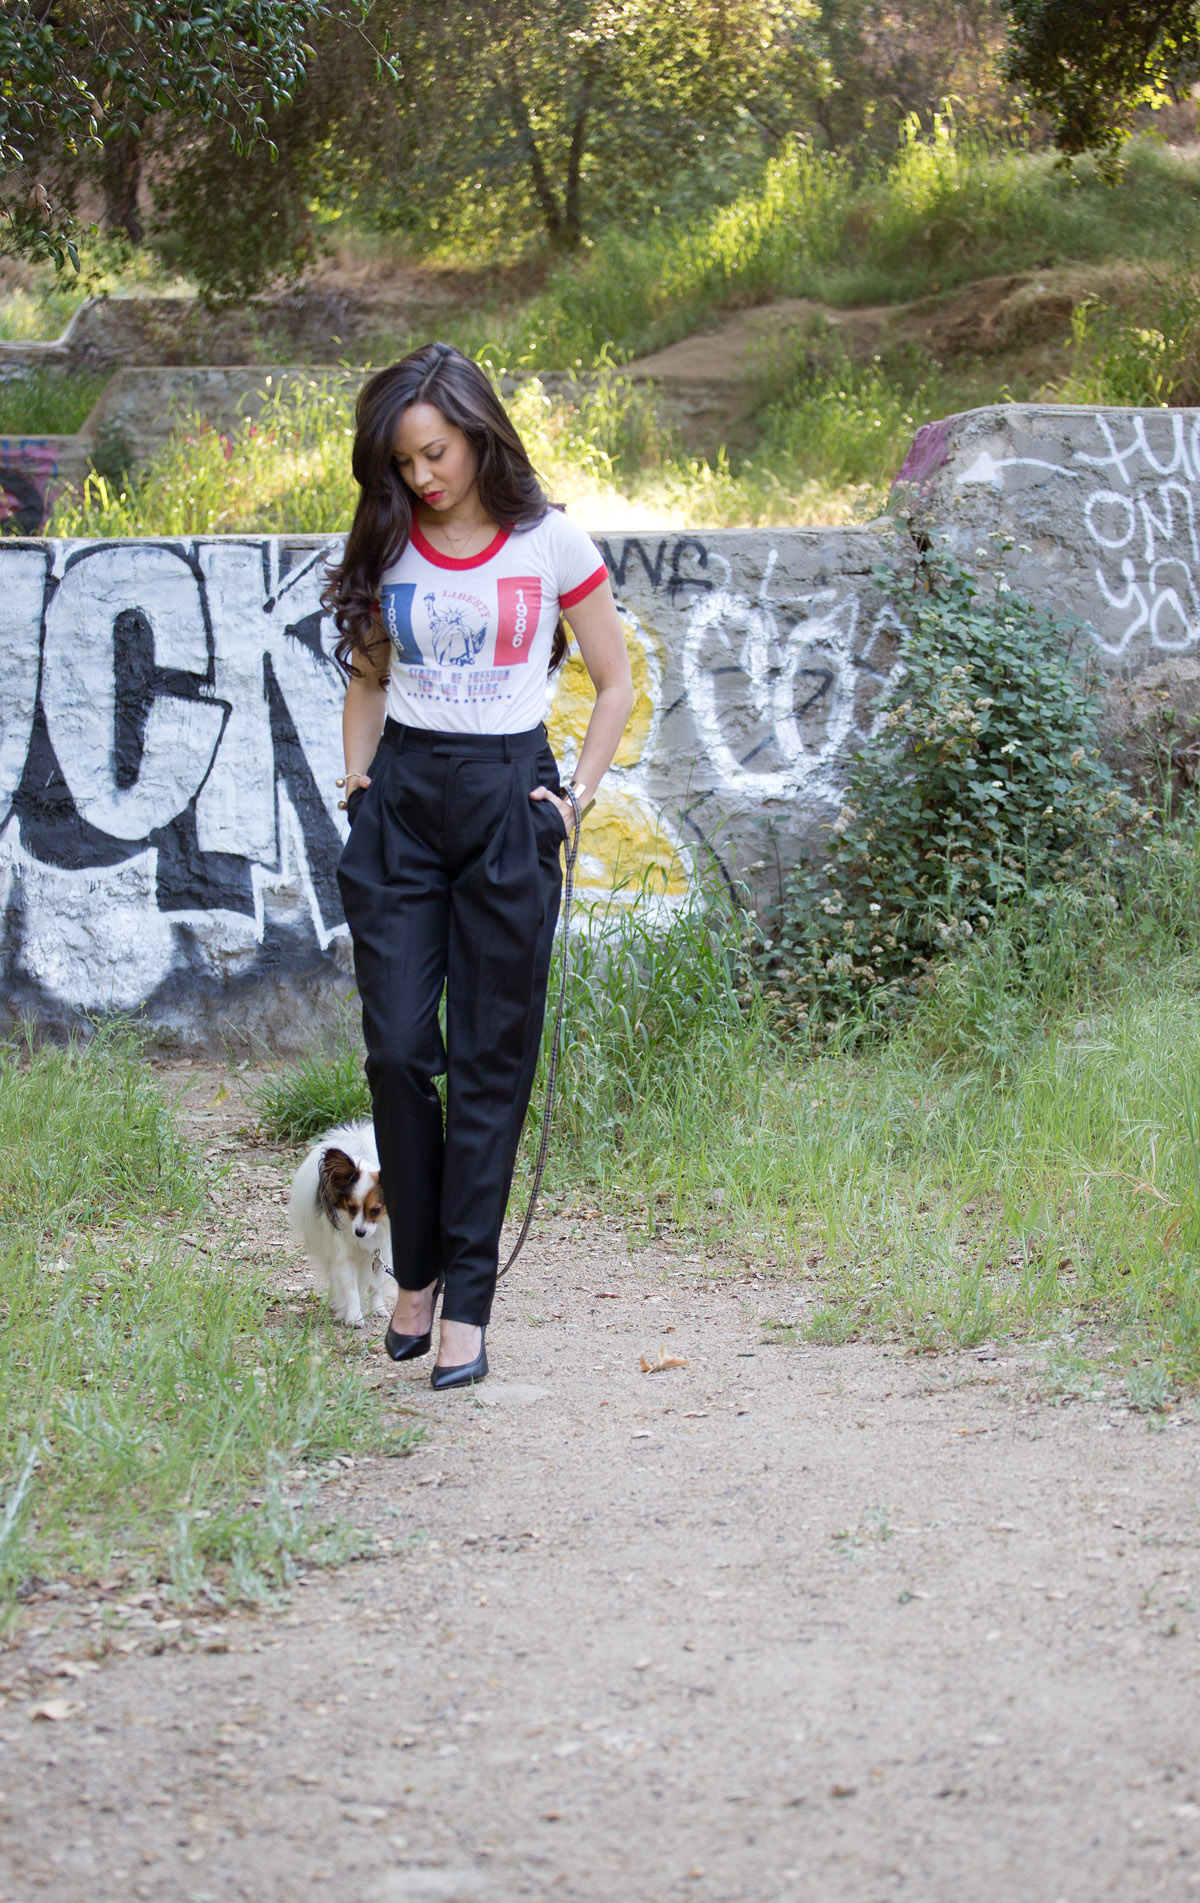 i have nothing to wear, graffiti, model graffiti, dog graffiti, model dog graffiti, photo shoot graffiti, griffith park graffiti, park graffiti, la graffiti, los angeles graffiti, vintage tee, vintage t-shirt, vintage shirt, vintage womens tee, vintage womens t-shirt, vintage new york tee, vintage new york t-shirt, vintage ny tee, vintage ny t-shirt, band of outsiders black womens pants, band of outsiders black womens trousers, black womens trousers, black womens pants, black womens slacks, iro heels, iro pumps, iro black heels, iro black pumps, black leather heels, black leather pumps, draped black pants, michele lobosco, photographer michele lobosco, la photo shoot, los angeles photo shoot, model on dog walk, dog and model, off duty model style, la style, los angeles style, model eyelashes, model street style, gold bodychain, gold body chain, body chain, bodychain, street style, la street style, ootd, ootn, model lips, perfect lips, camille newbern, the la survival guide, la survival guide, thelasurvivalguide, lasurvivalguide, los angeles fashion blogs, los angeles style blogs, drybar, drybar model, drybar blowout, long hair blowout, blushington, blushington weho, blushington makeup, papillon, papillon dog, eurasian models, eurasian actresses, shopping los angeles, shopping la, modeling la, modeling los angeles, jouer grace, xiv karats, xiv karats necklace, xiv karats diamond necklace, catbird rings, artelier world cuff, map cuff, griffith park photo shoot